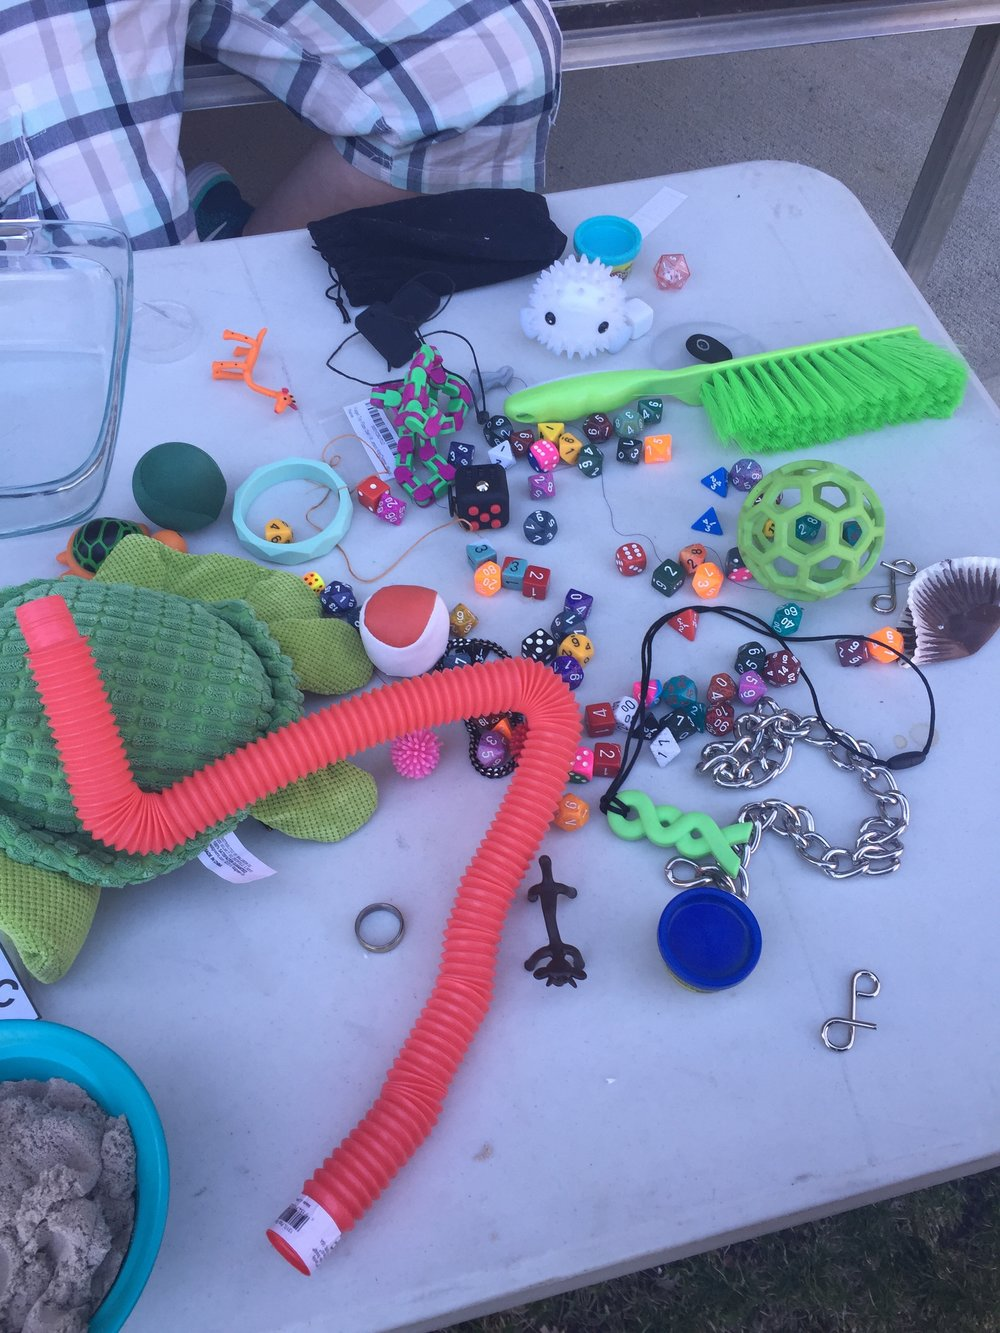 Image description: A table displaying many types of stim toys including fidgets, a sensory brush,chewables, jewelry and plushies.